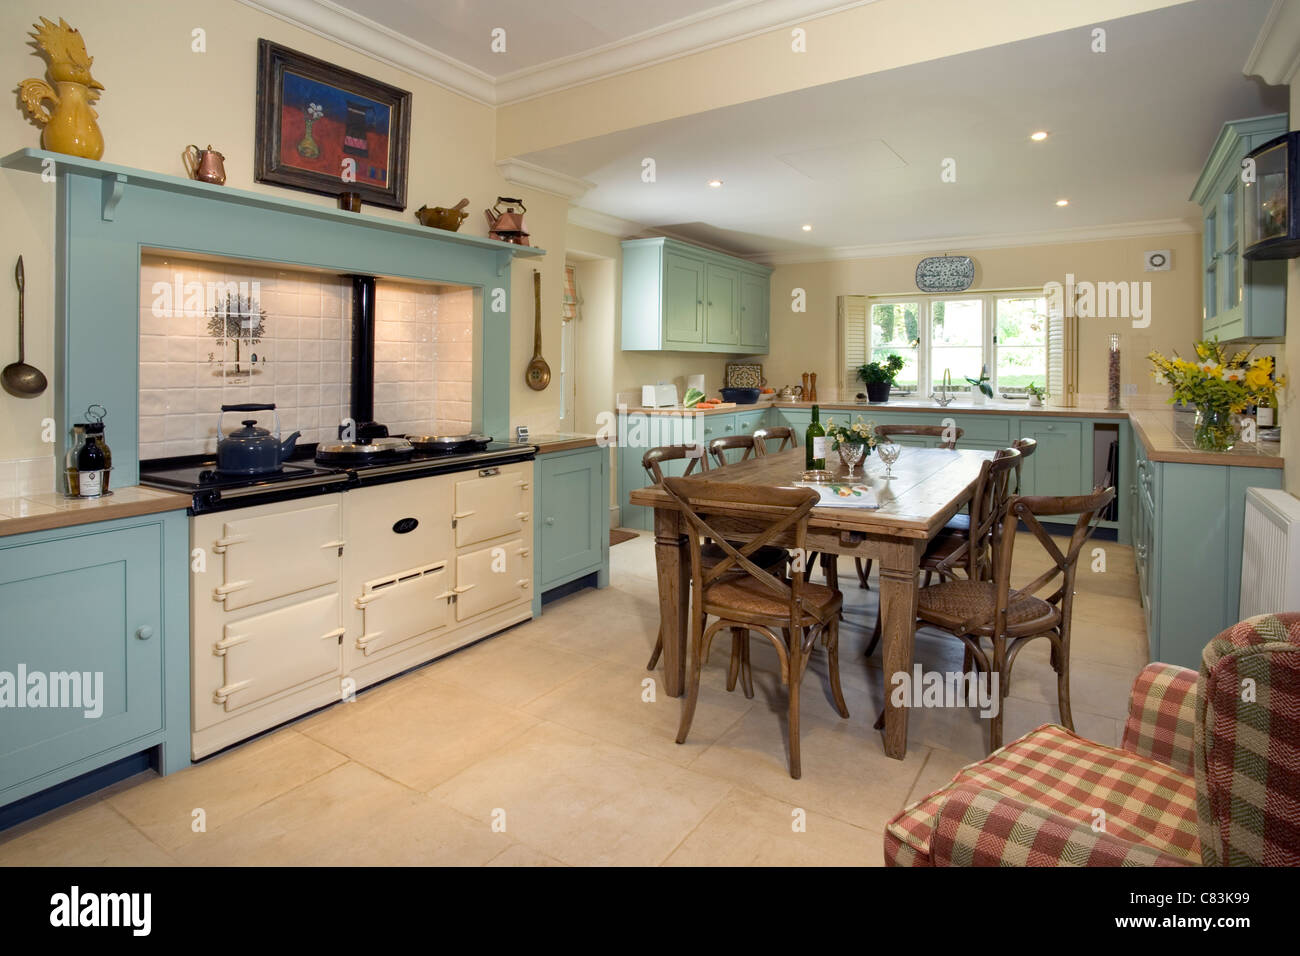 Contemporary farmhouse style kitchen with Aga cooker Stock